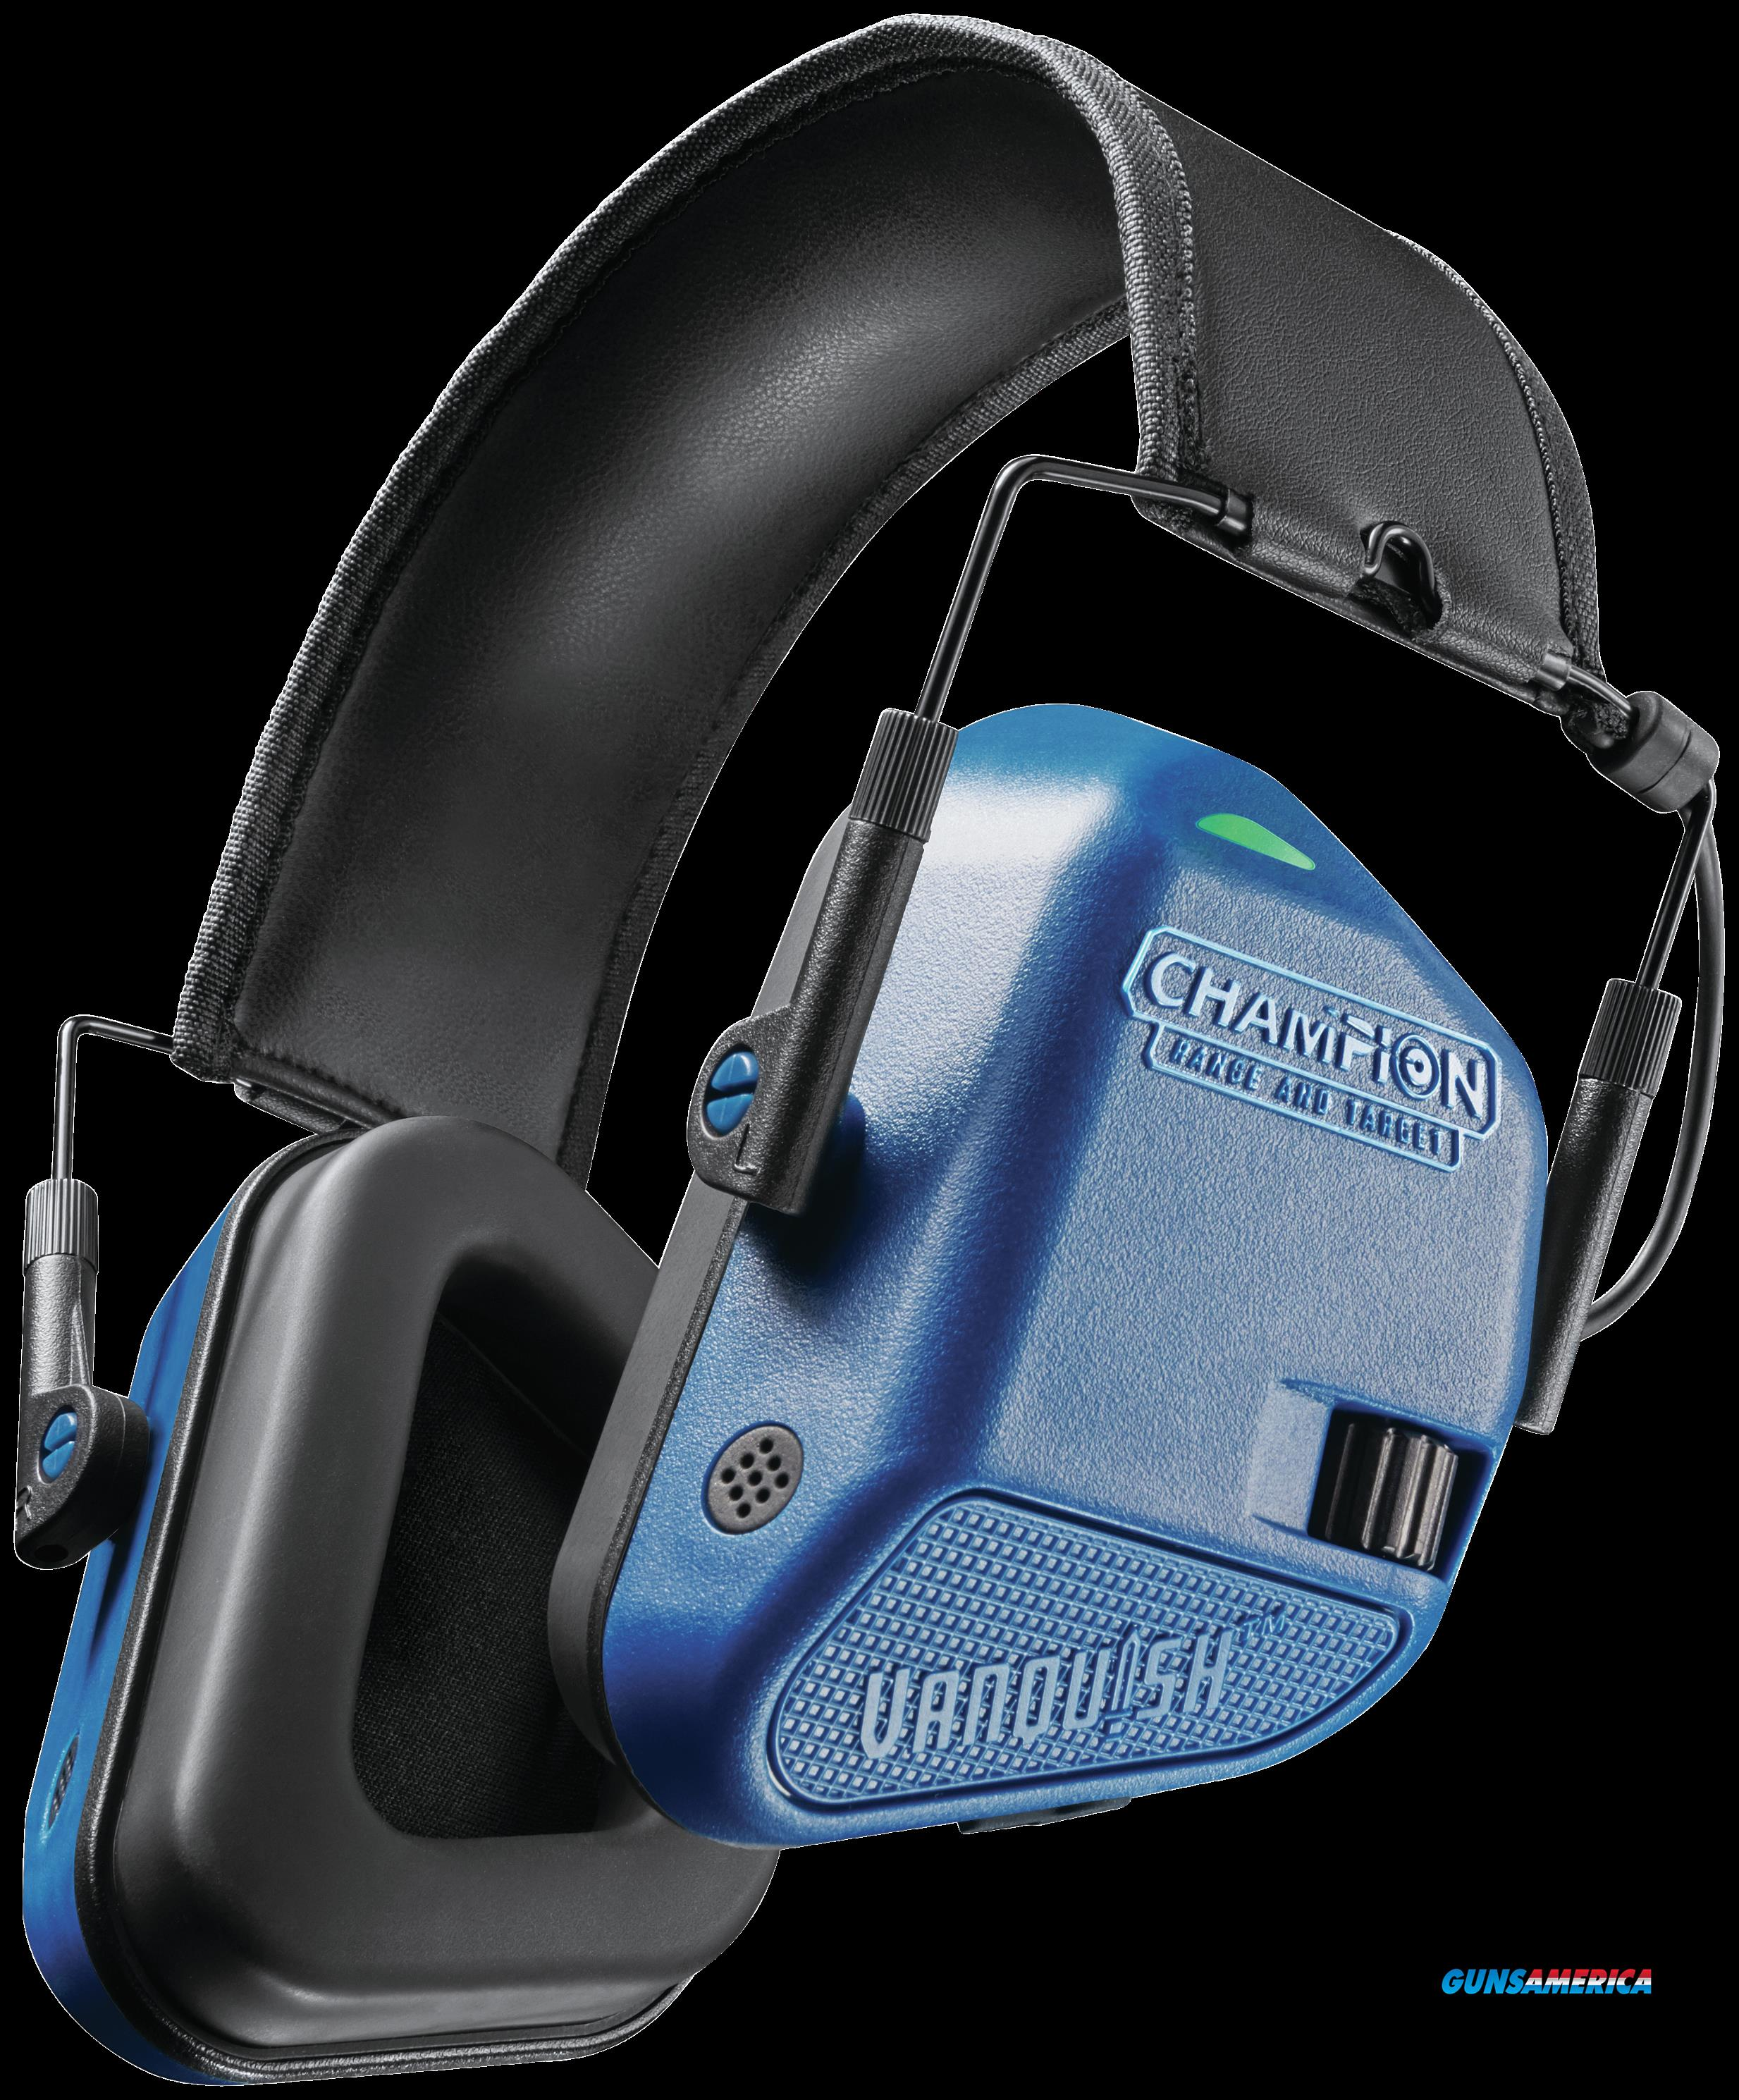 Champion Targets Vanquish Hearing Protection, Champ 40979 Headphone Elec Vanquish Blue  Guns > Pistols > 1911 Pistol Copies (non-Colt)